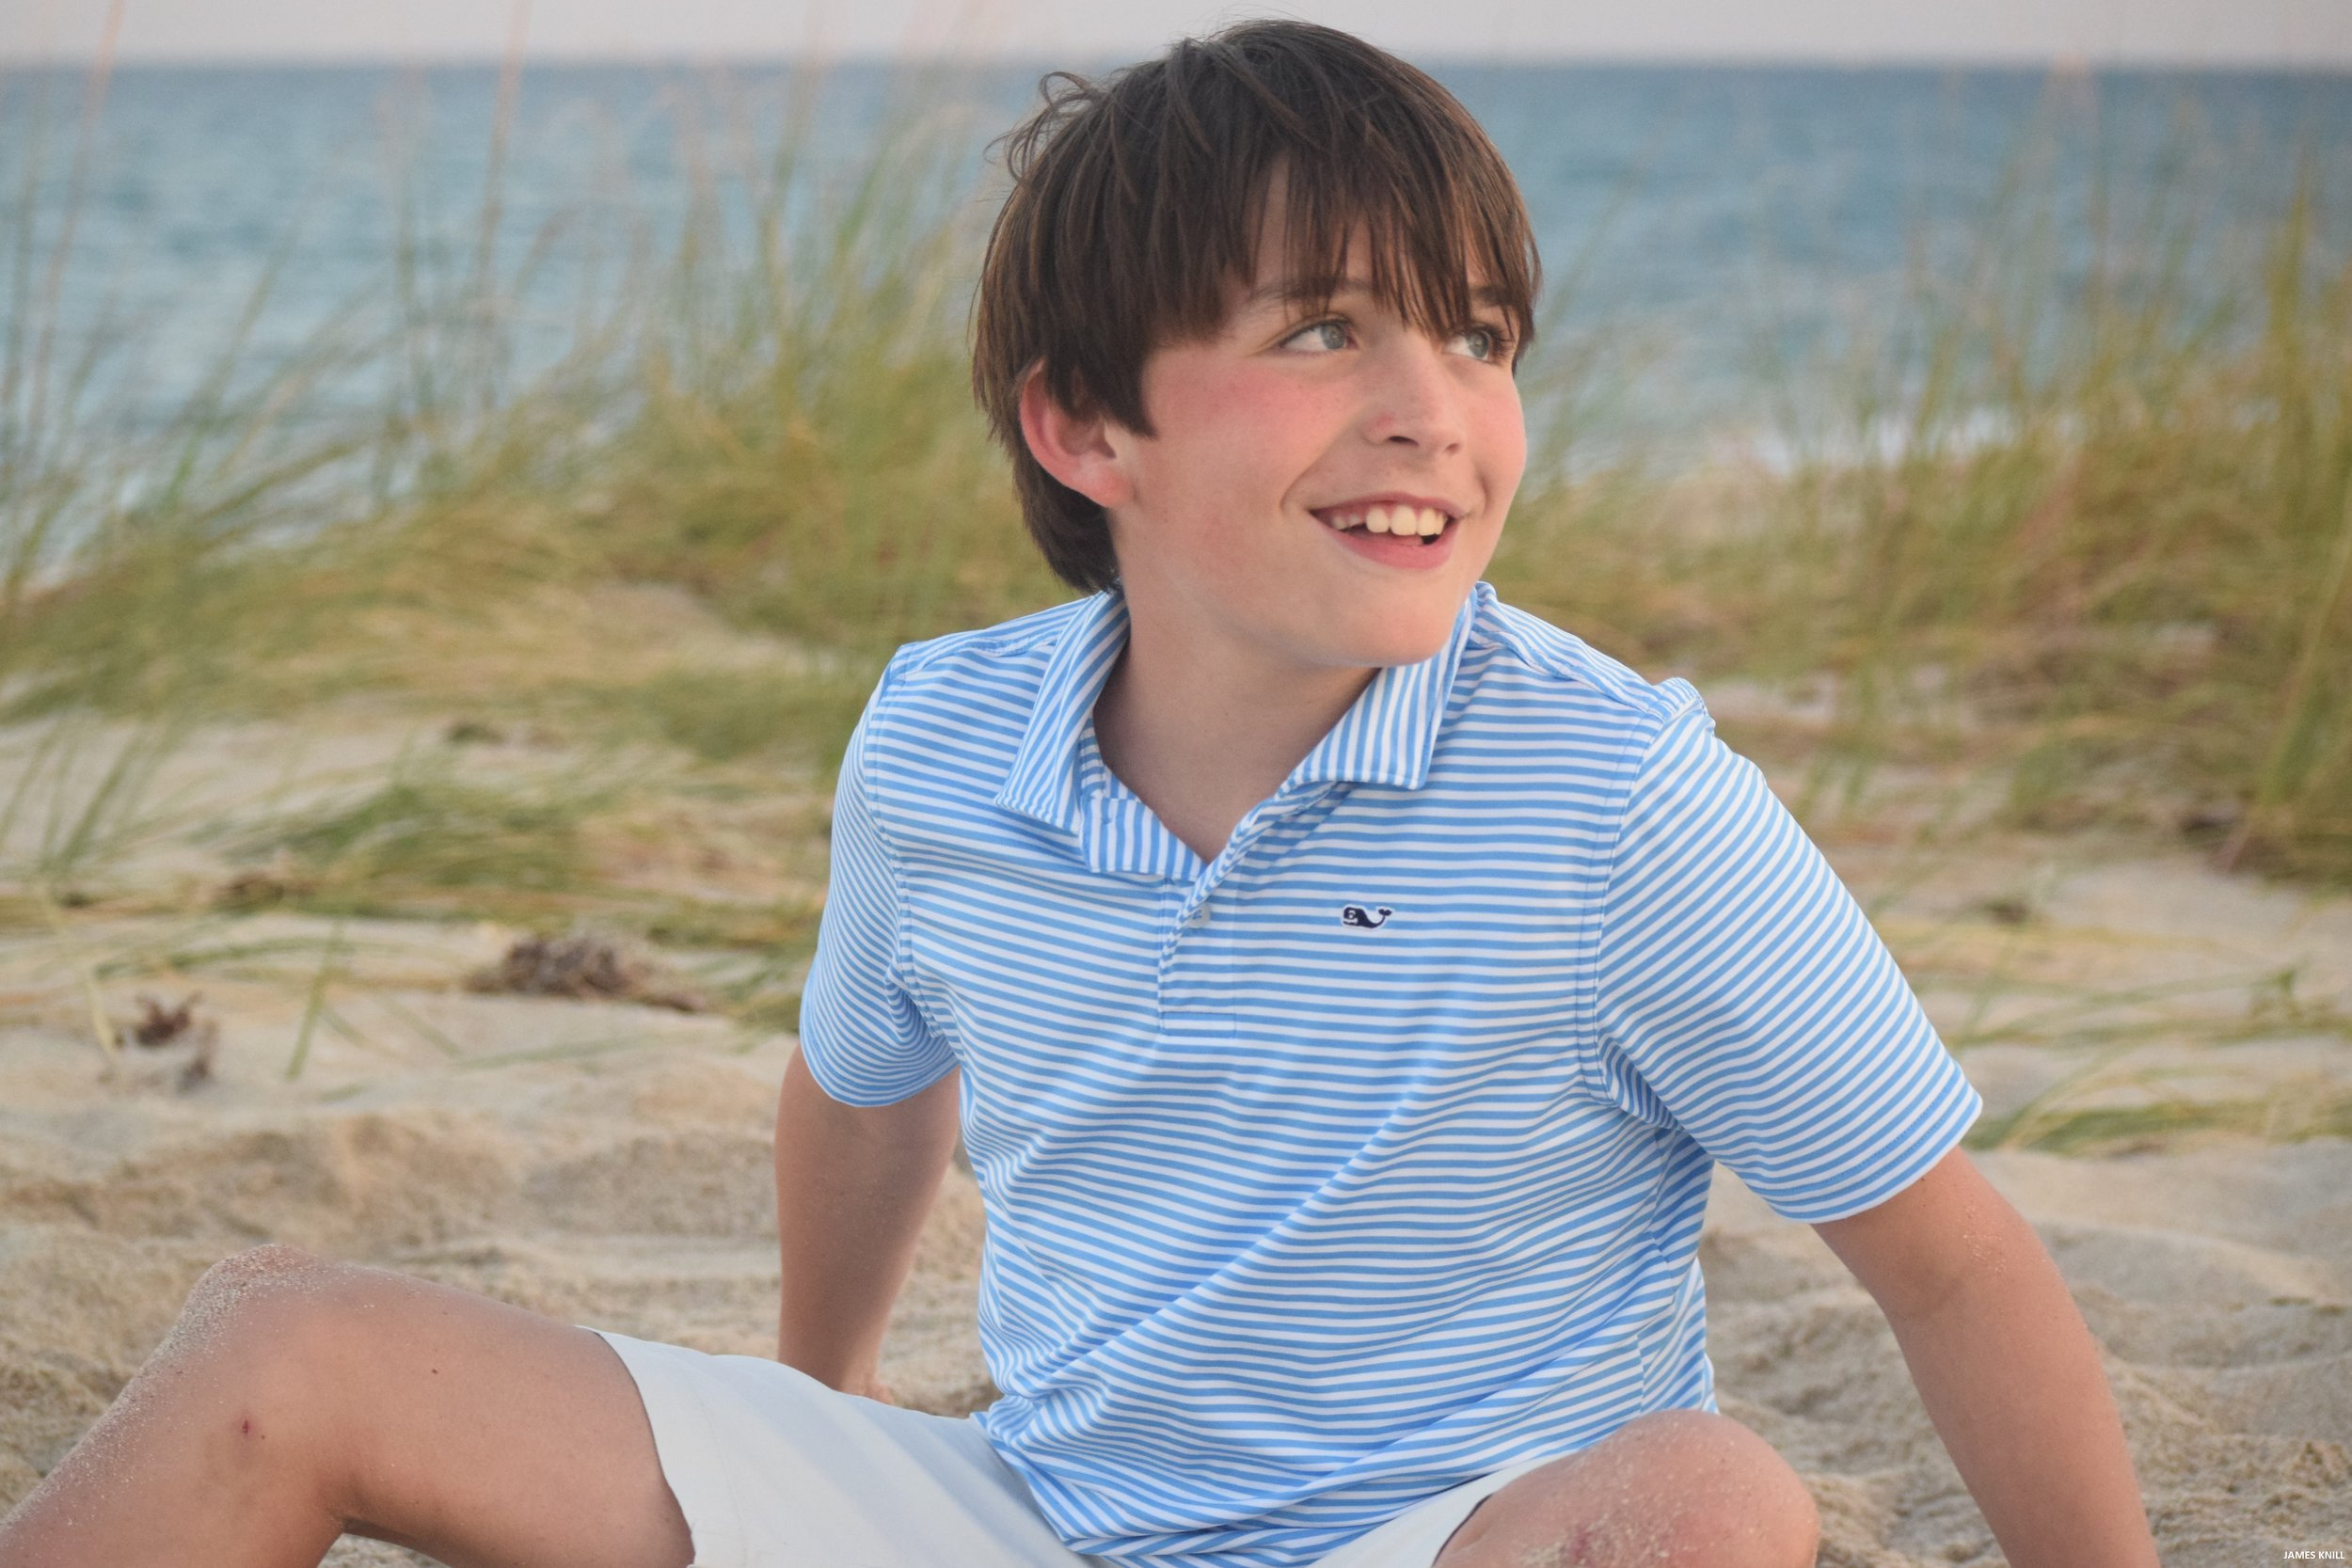 Portrait Of A Boy On The Beach. Photography By James Knill